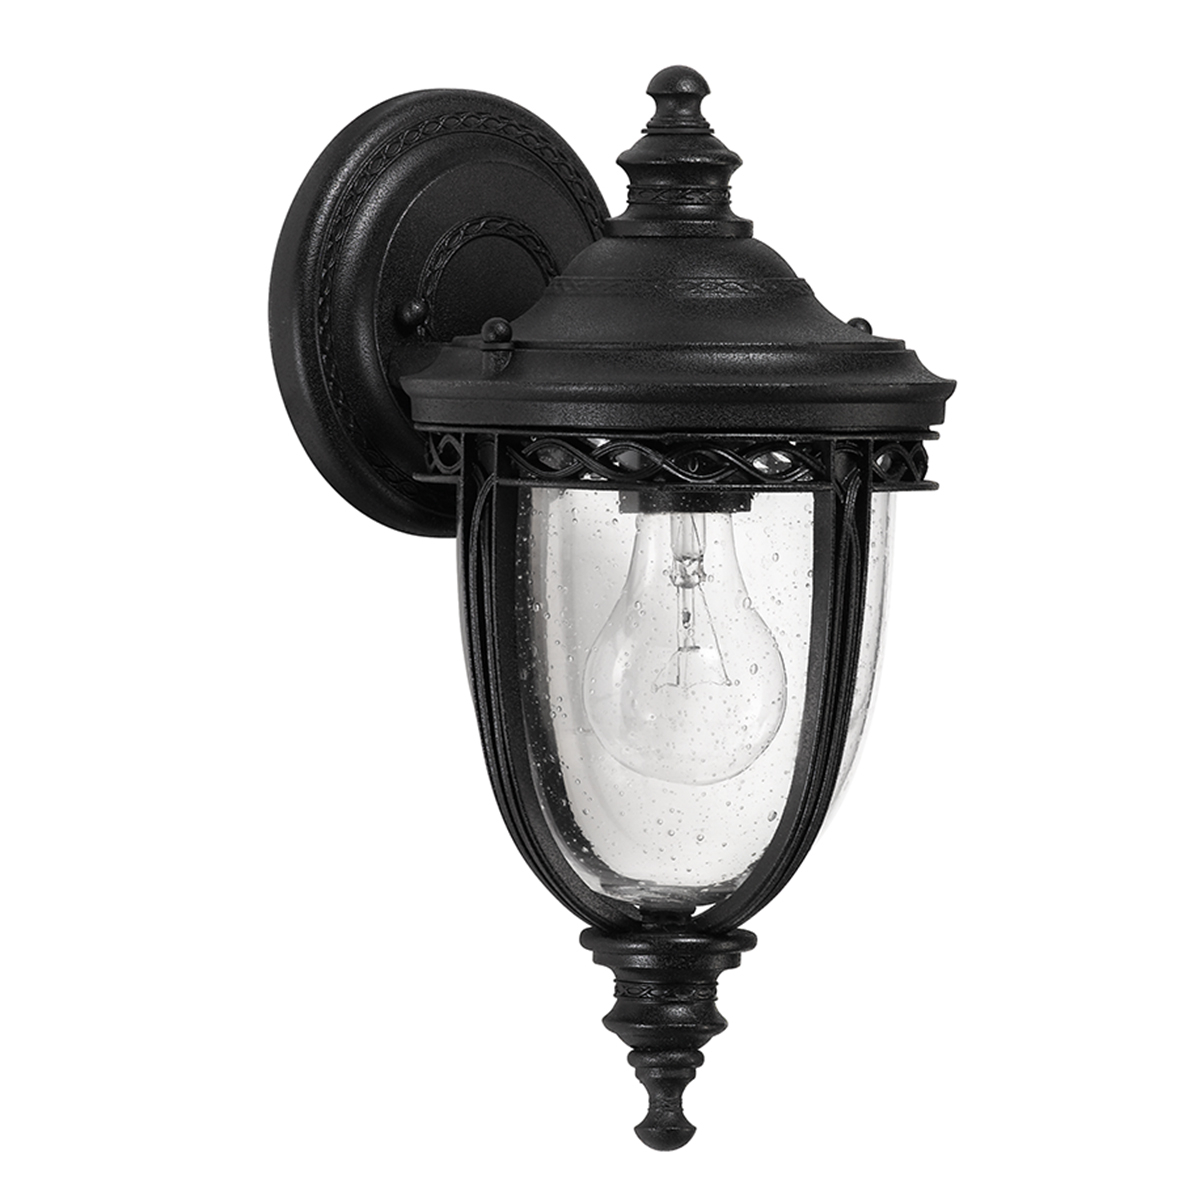 25083 – 1 Light Small Wall Lantern In Textured Black Intended For Favorite Merild Textured Black Wall Lanterns (View 15 of 15)